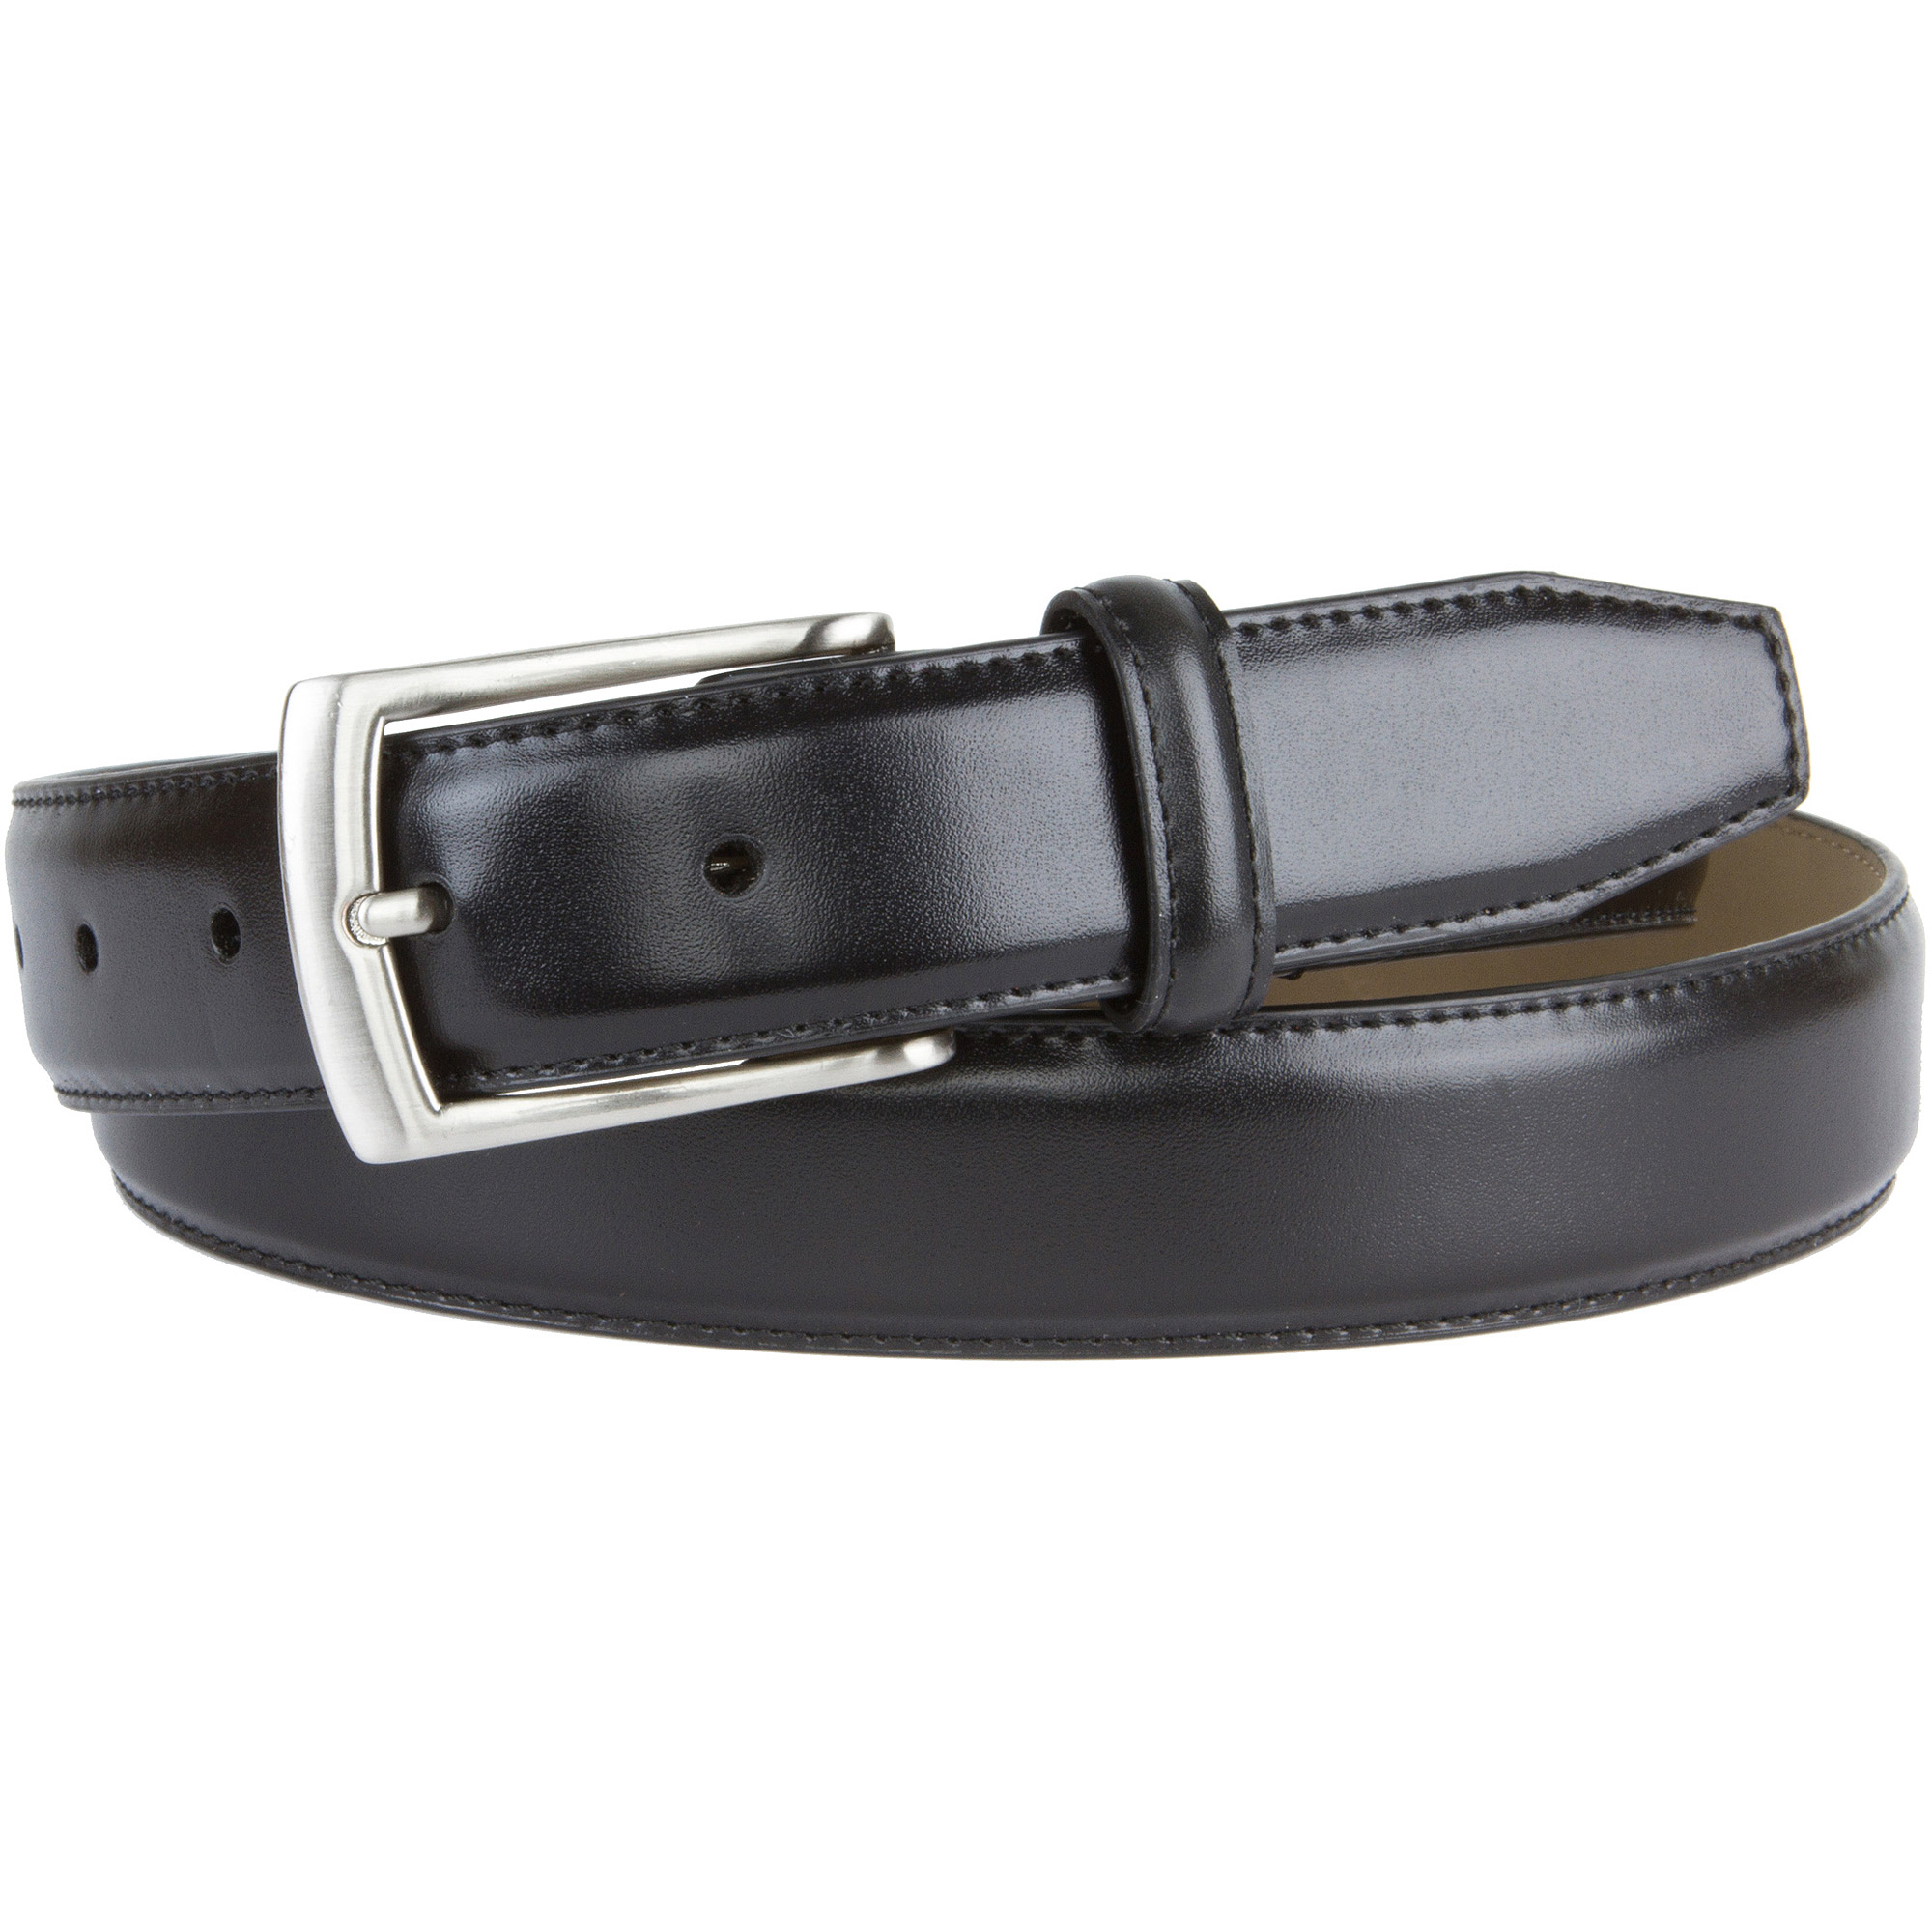 Men's Leather Dress Belt with Buckle Stretch